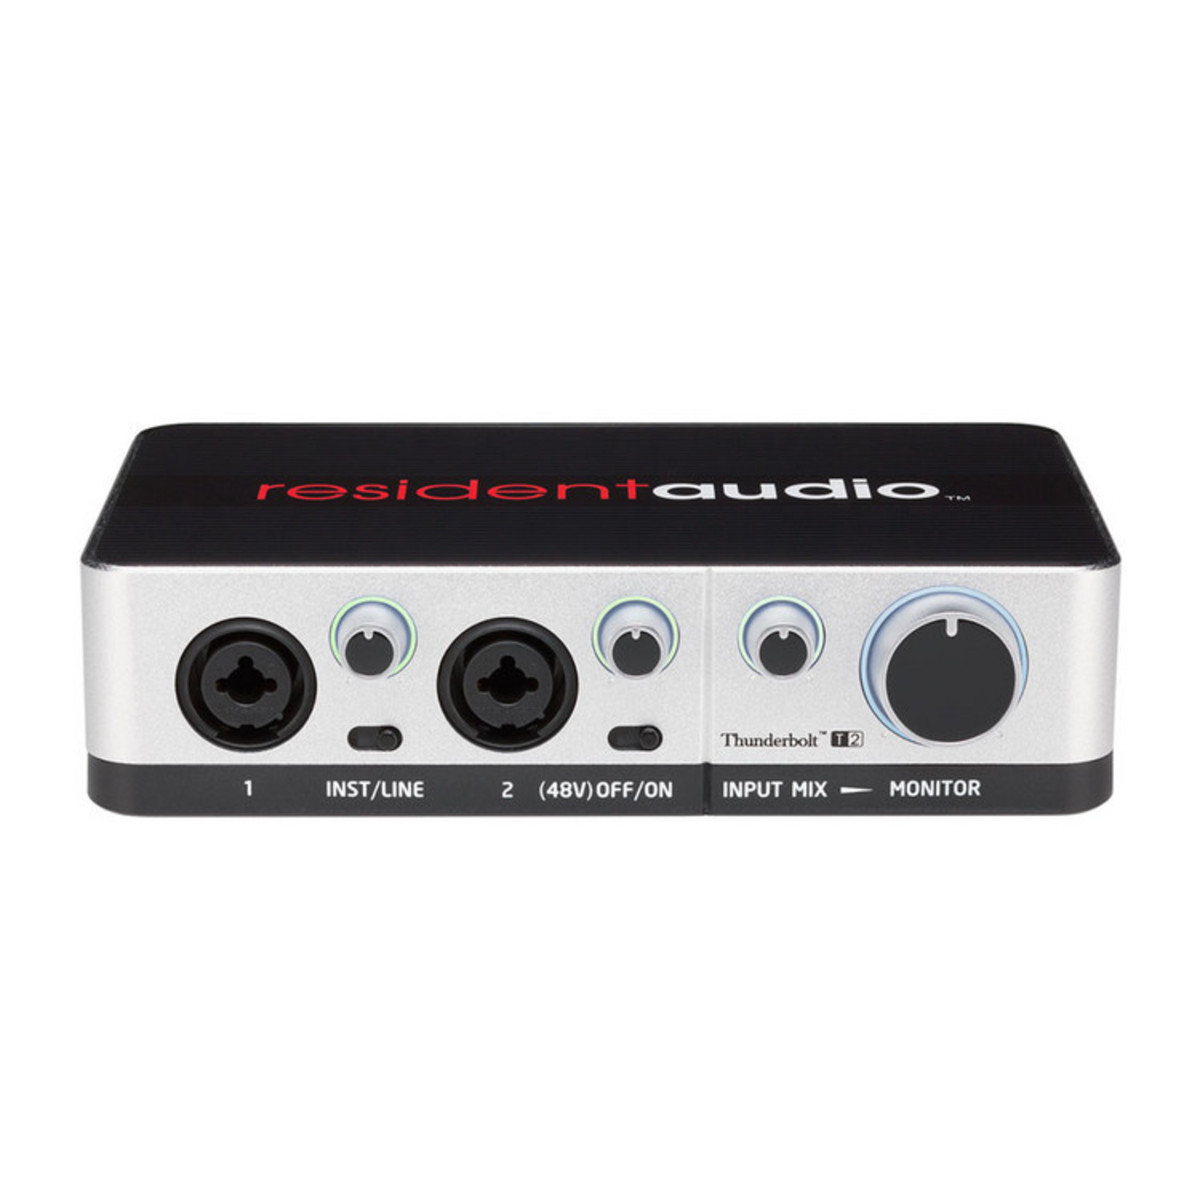 resident audio t2 thunderbolt audio interface nearly new at. Black Bedroom Furniture Sets. Home Design Ideas